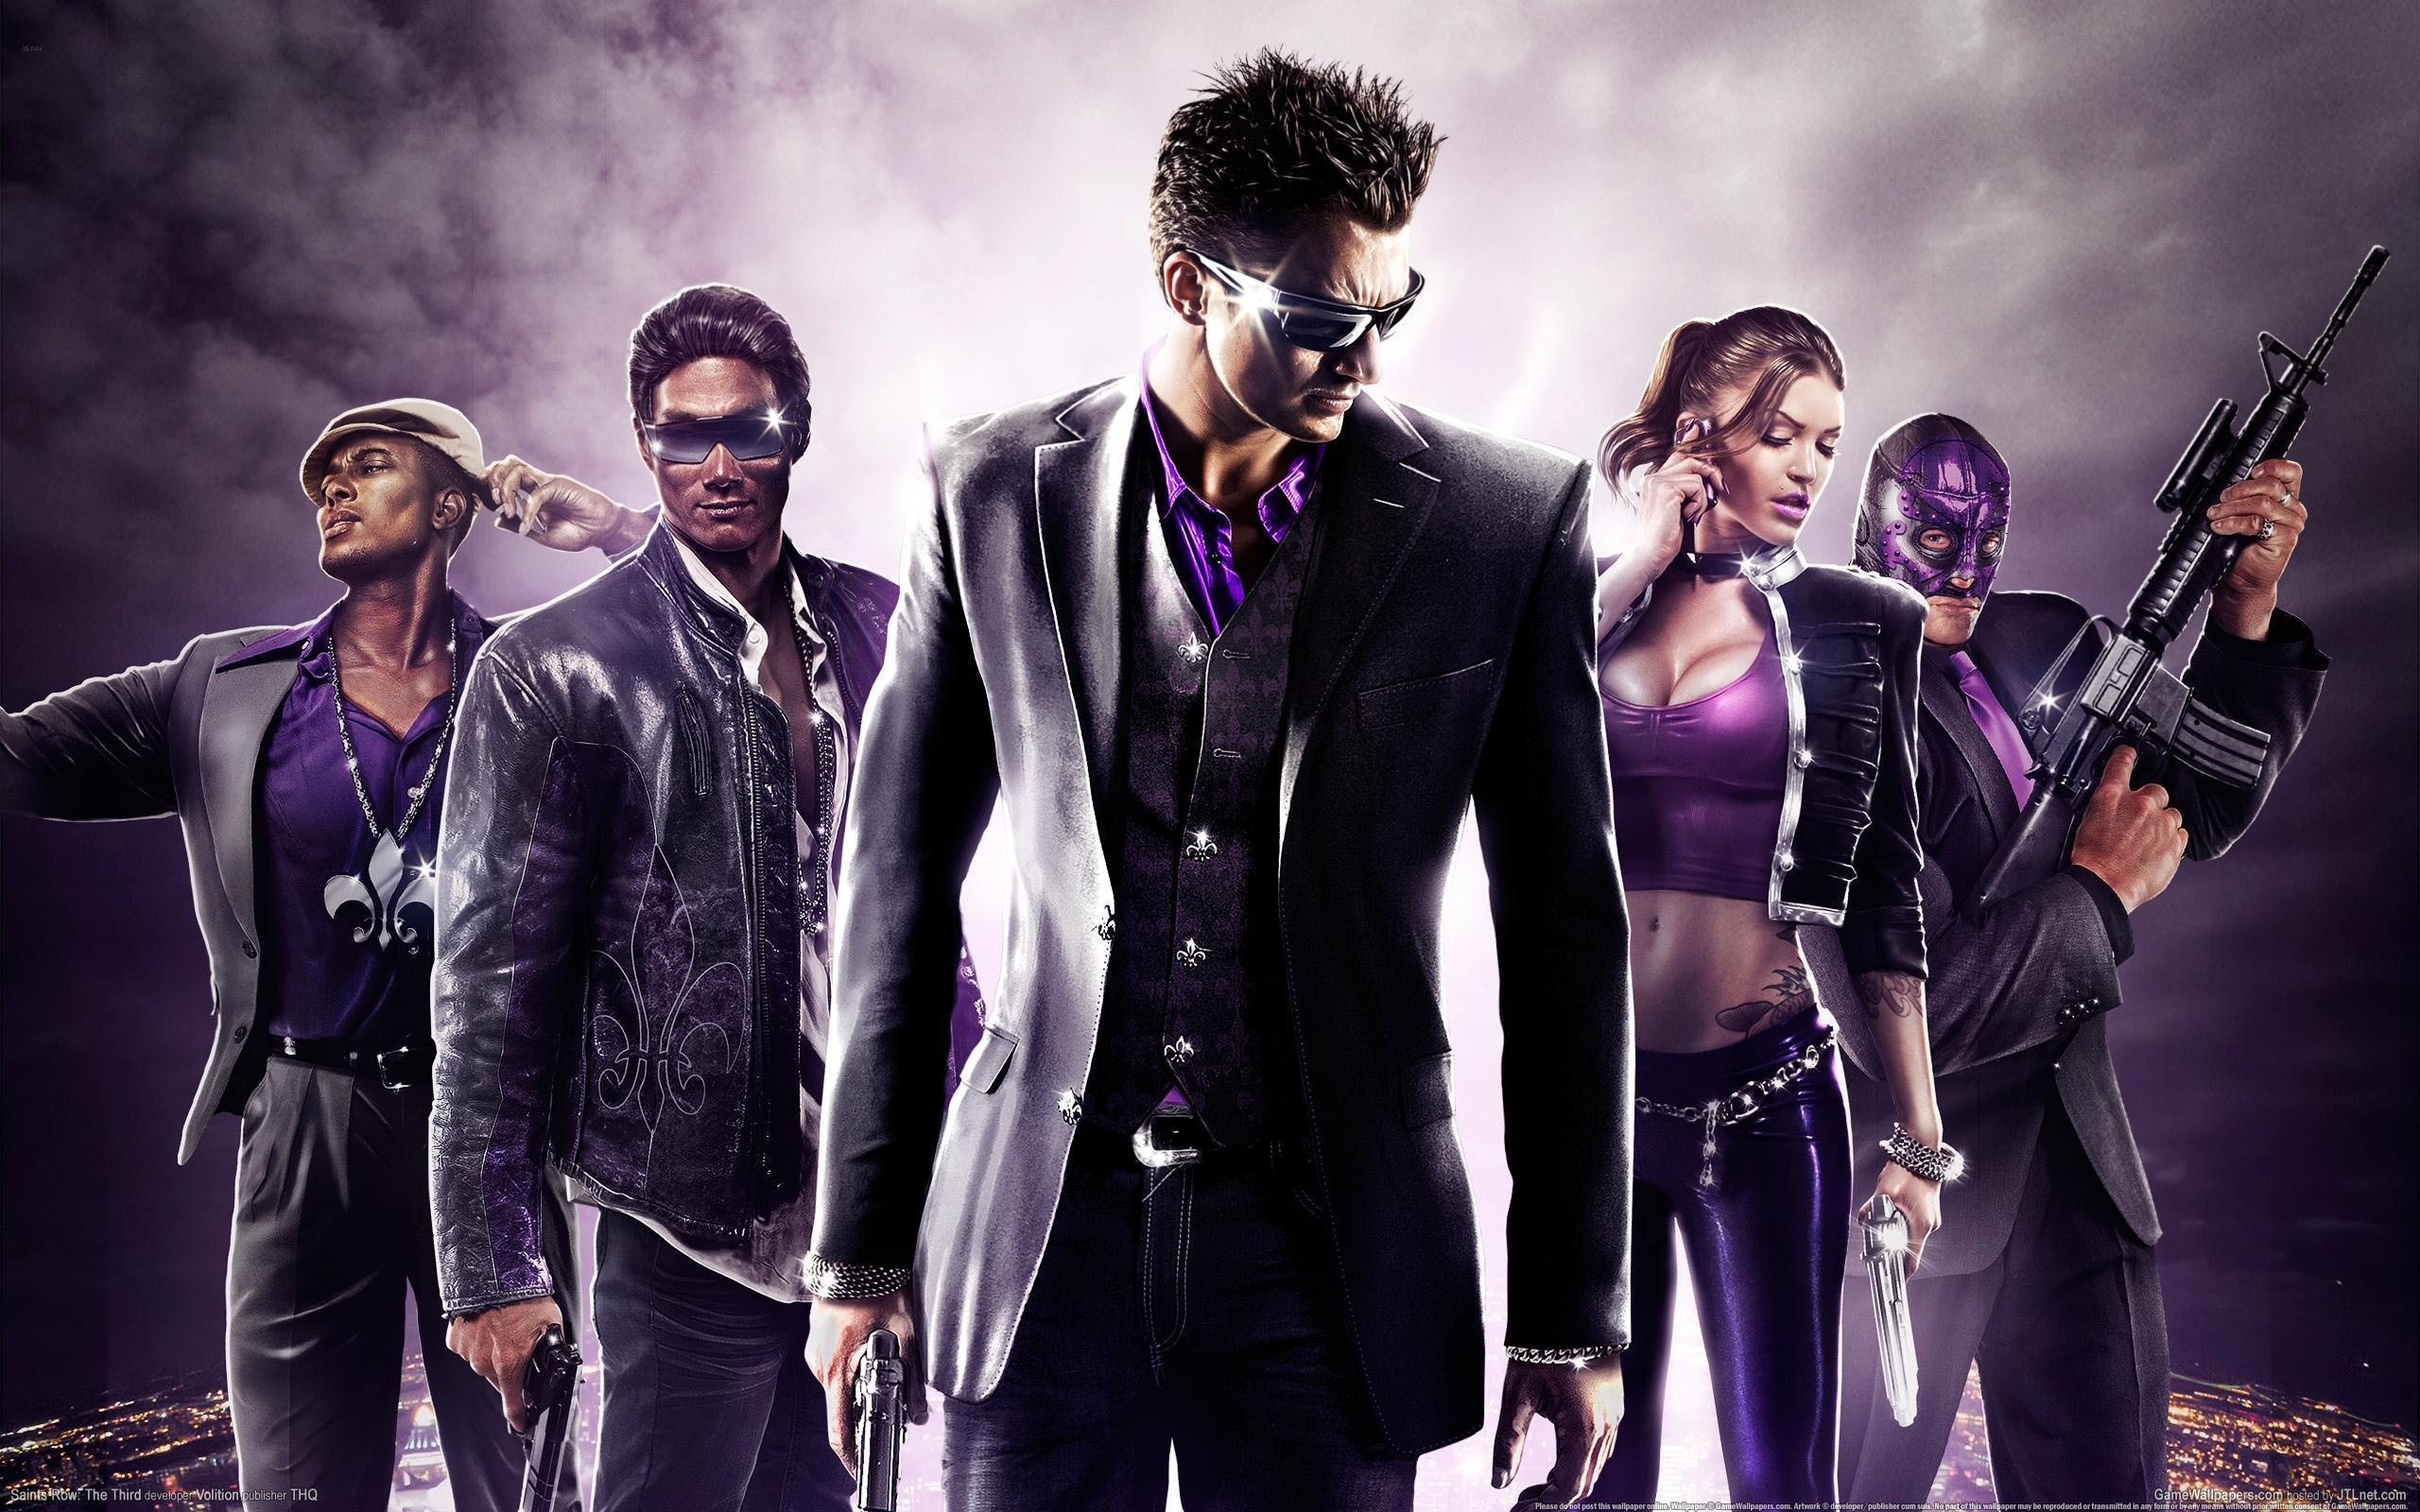 Saints row 3 game wallpapers in jpg format for free download.